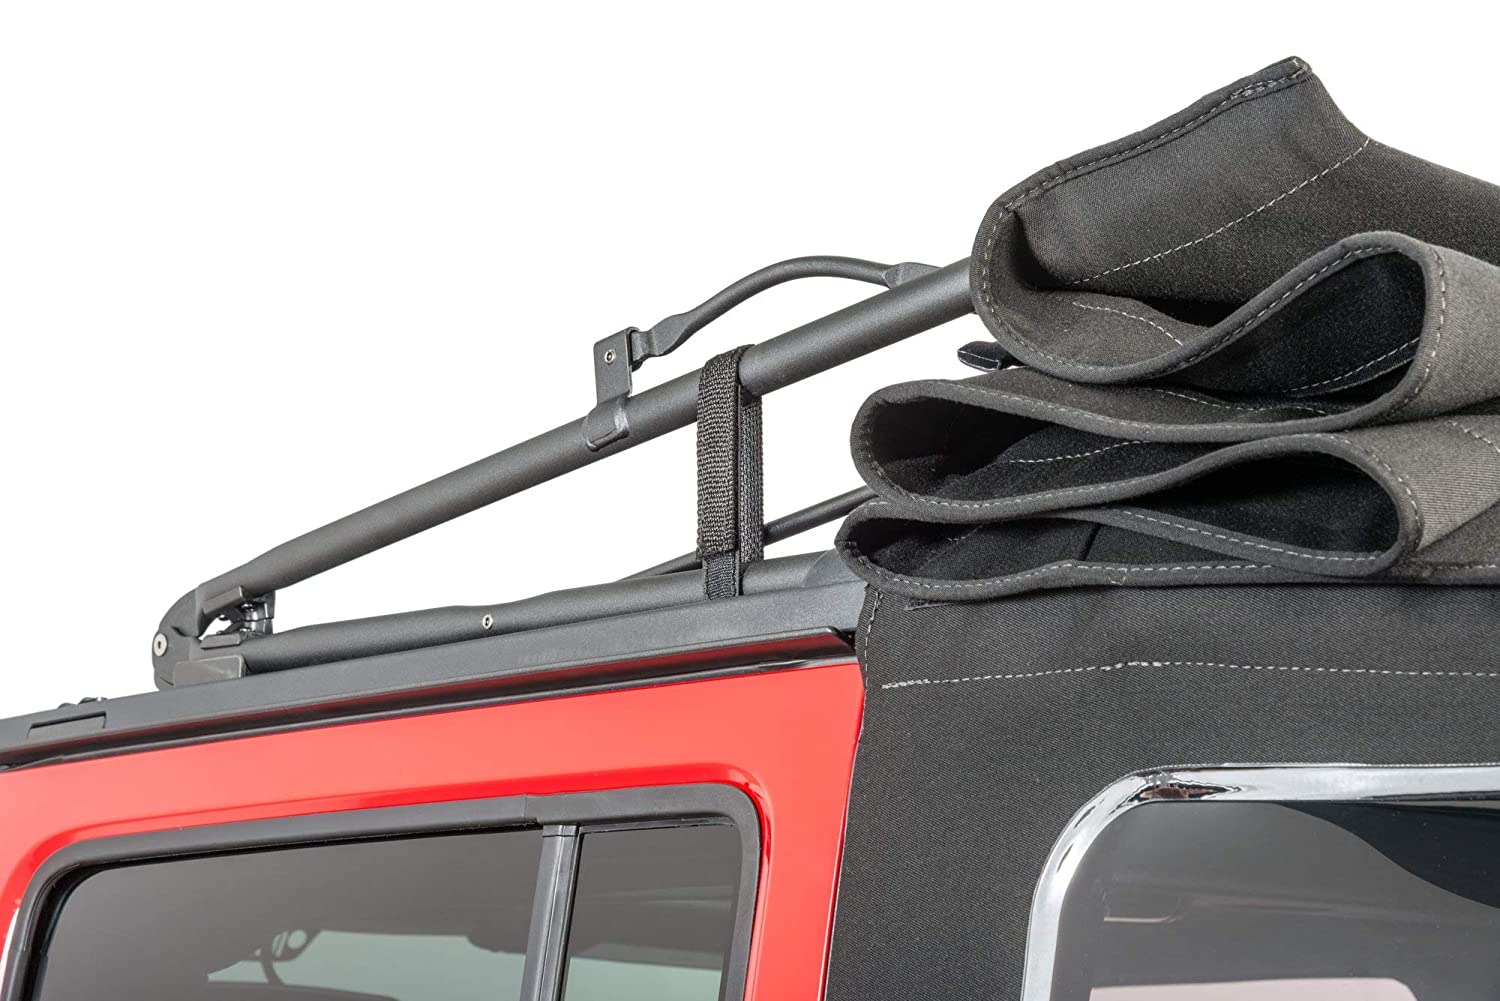 Home MFC 4 pcs Durable Tie Down roof top Straps 20 x 1.5 Hook /& Steel Loop Fasteners//Rear Window//Secure Soft Top Straps Sunrider//Adjustable Cinch Straps for Jeep Wrangler Outdoors